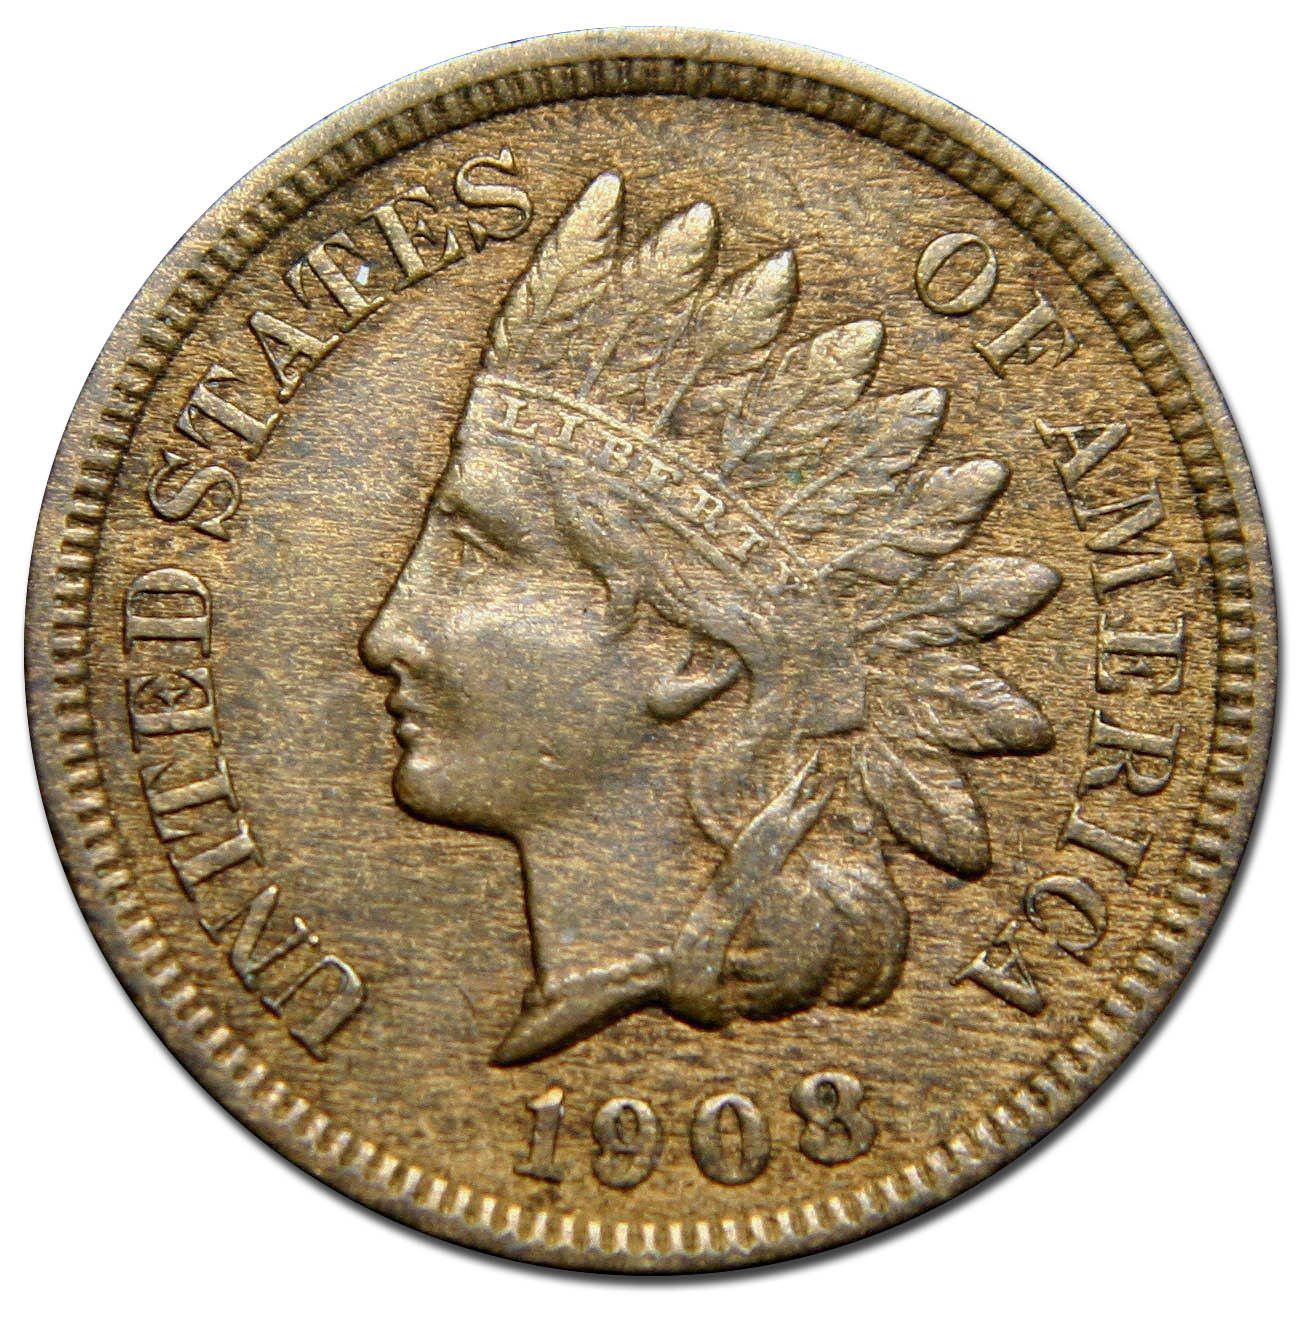 1908S One Cent Indian Head Penny Coin Lot# MZ 2656